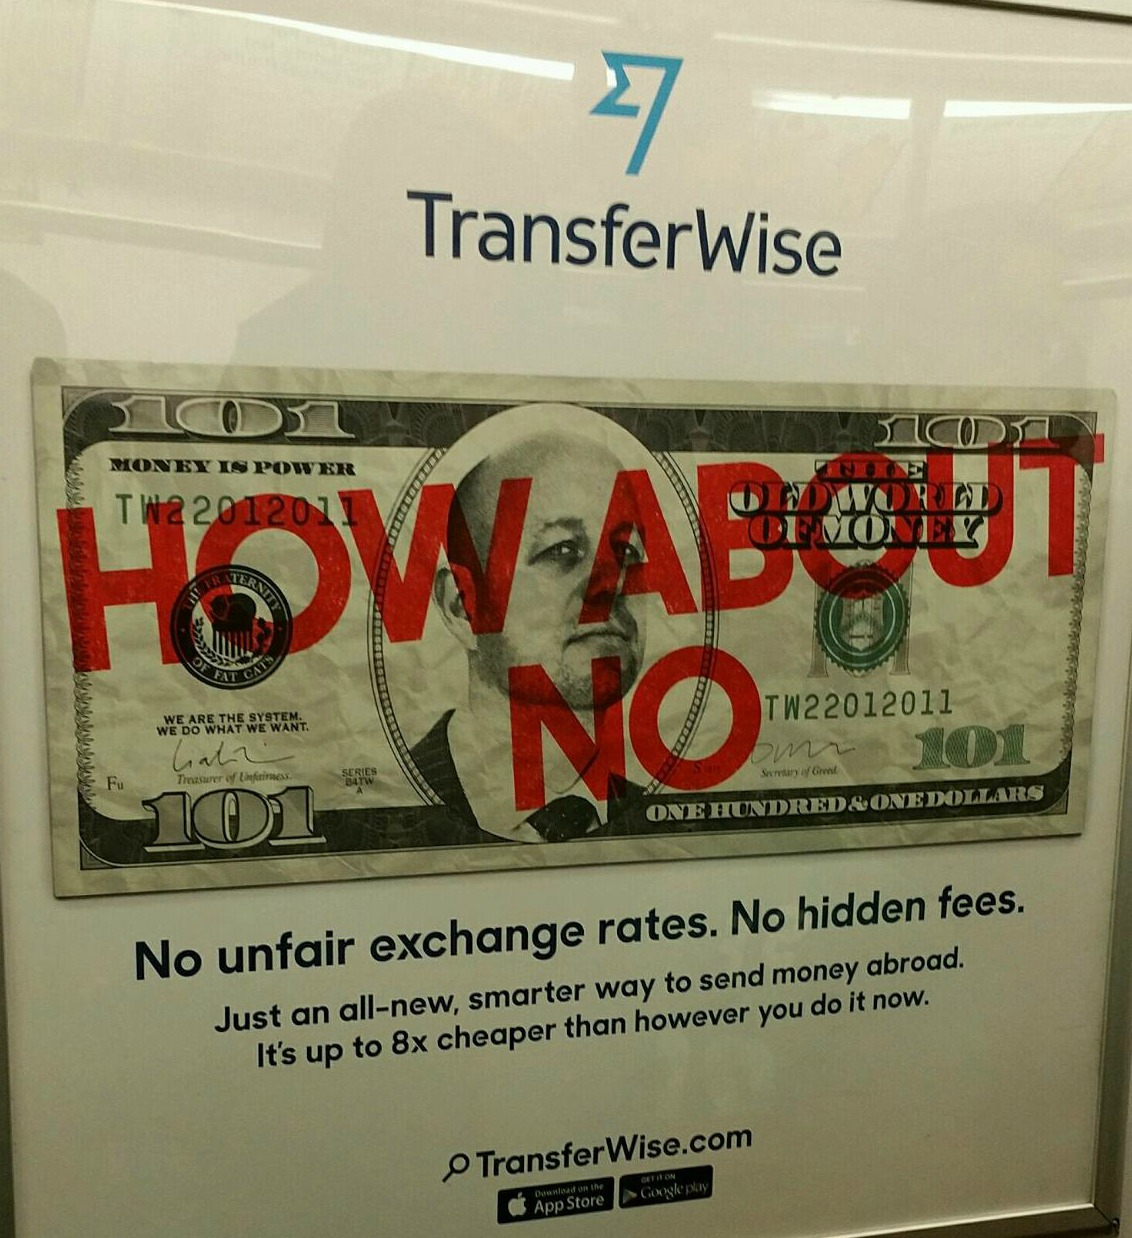 TransferWise Money Transfer: billboards in New York city subway, March 2015